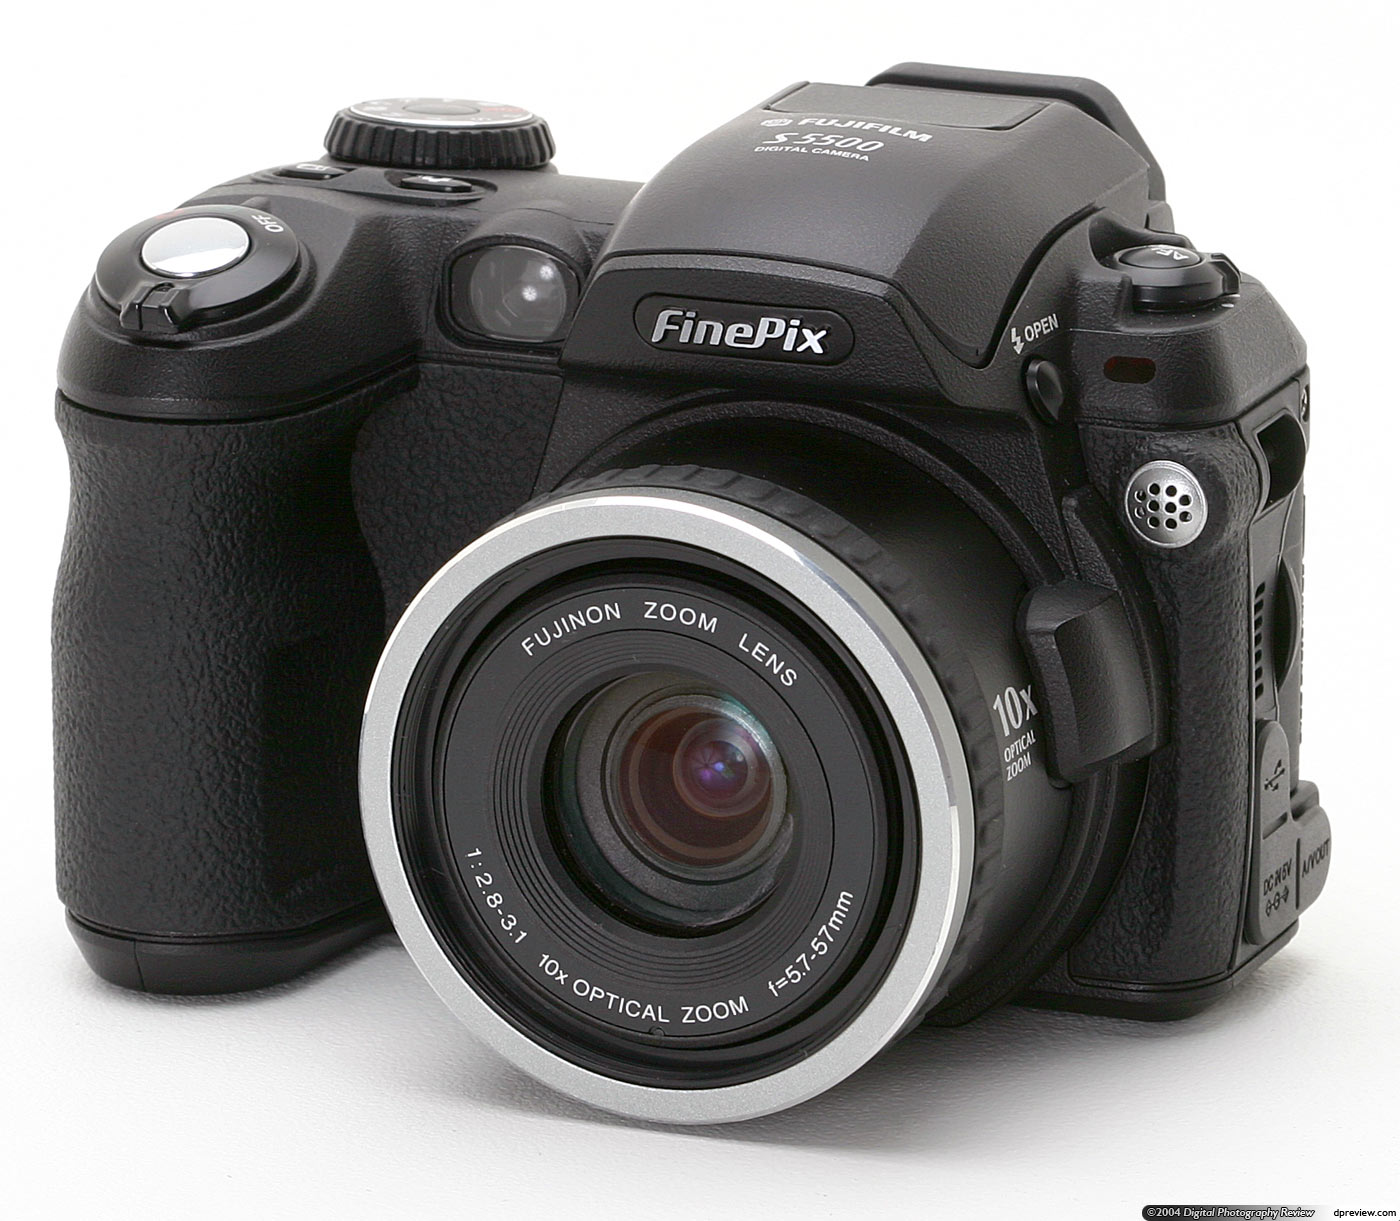 Fuji Fuji Fujifilm Finepix S5100 S5500 Review Digital Photography